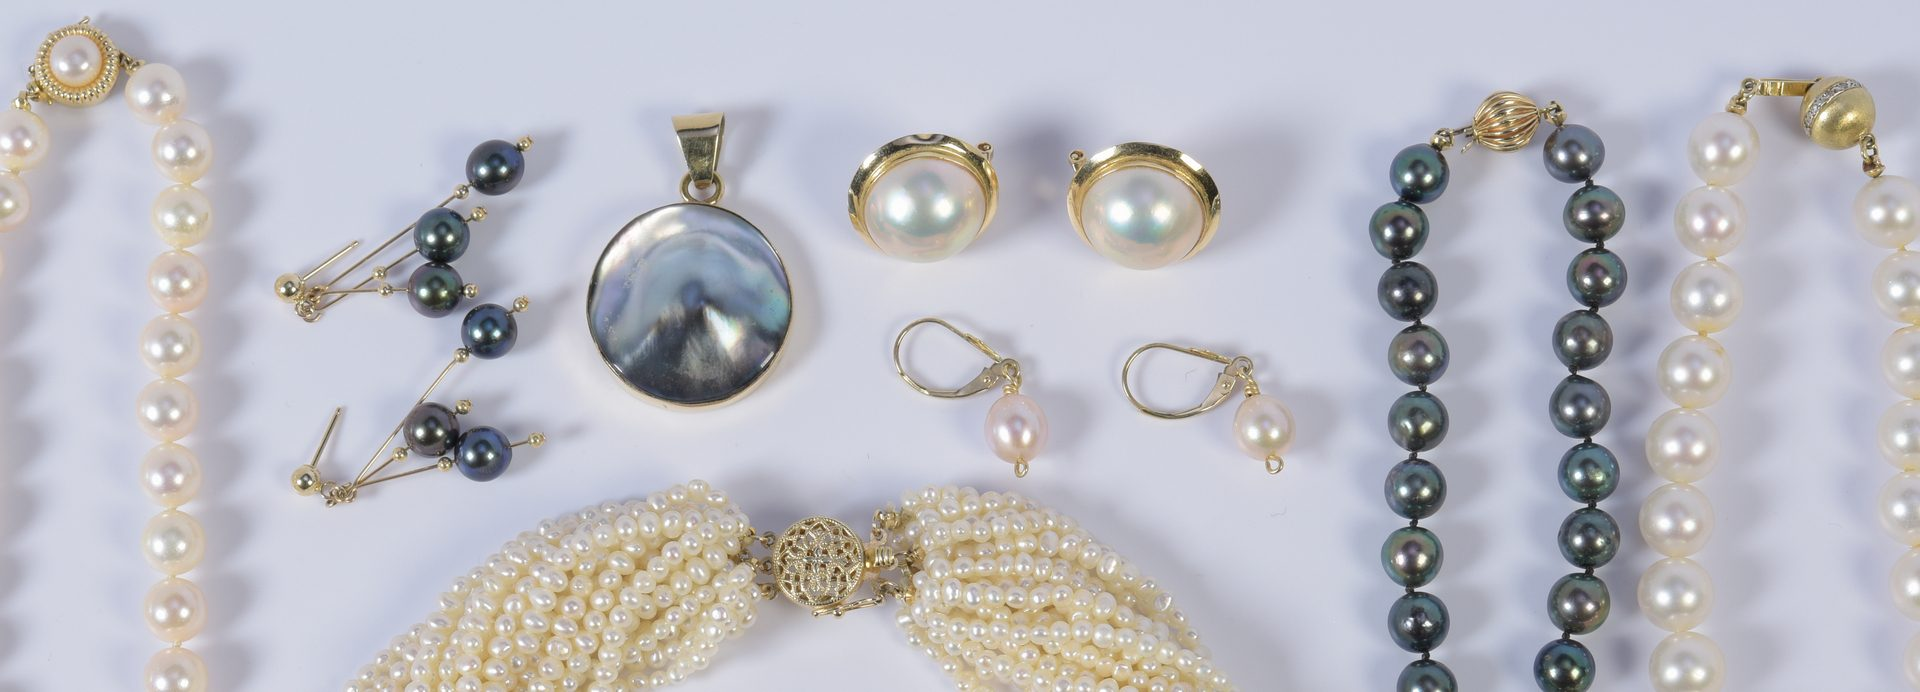 Lot 943: Group of Pearl Jewelry, 8 items